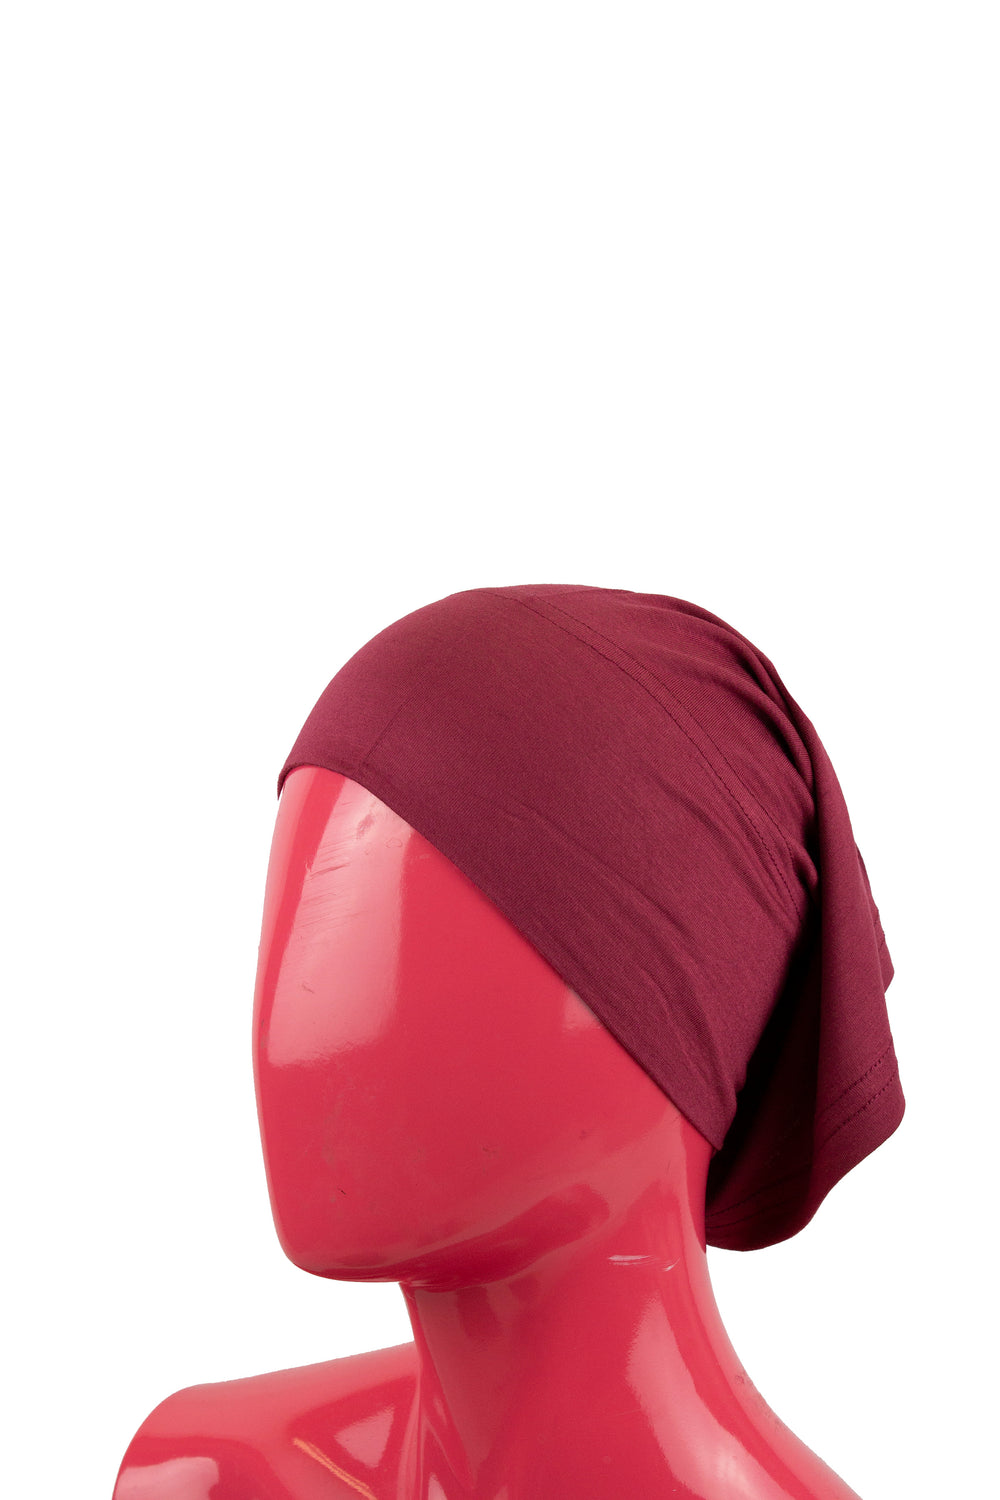 maroon under scarf tube cap for hijab